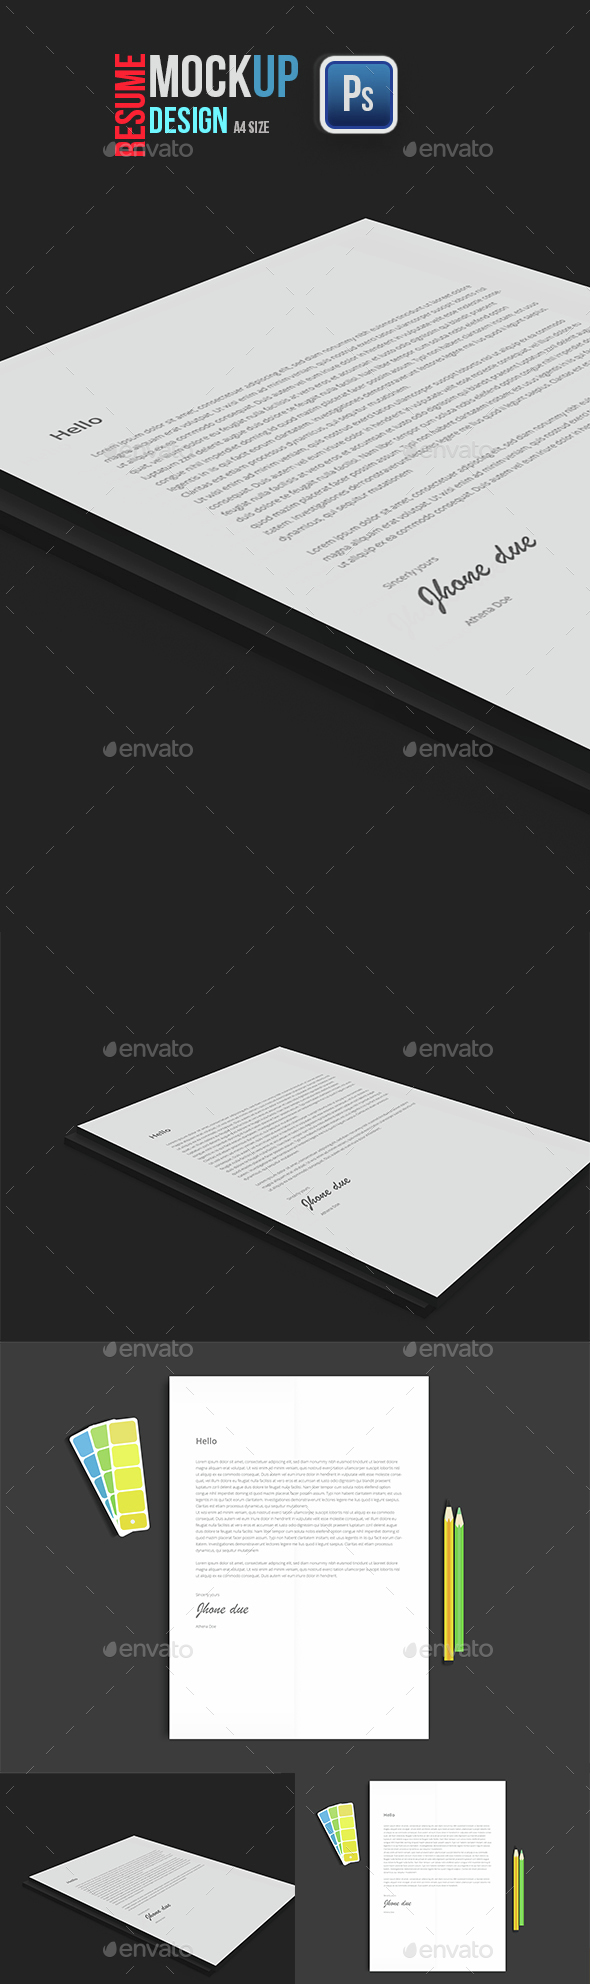 Resume A4 Mockup - Product Mock-Ups Graphics